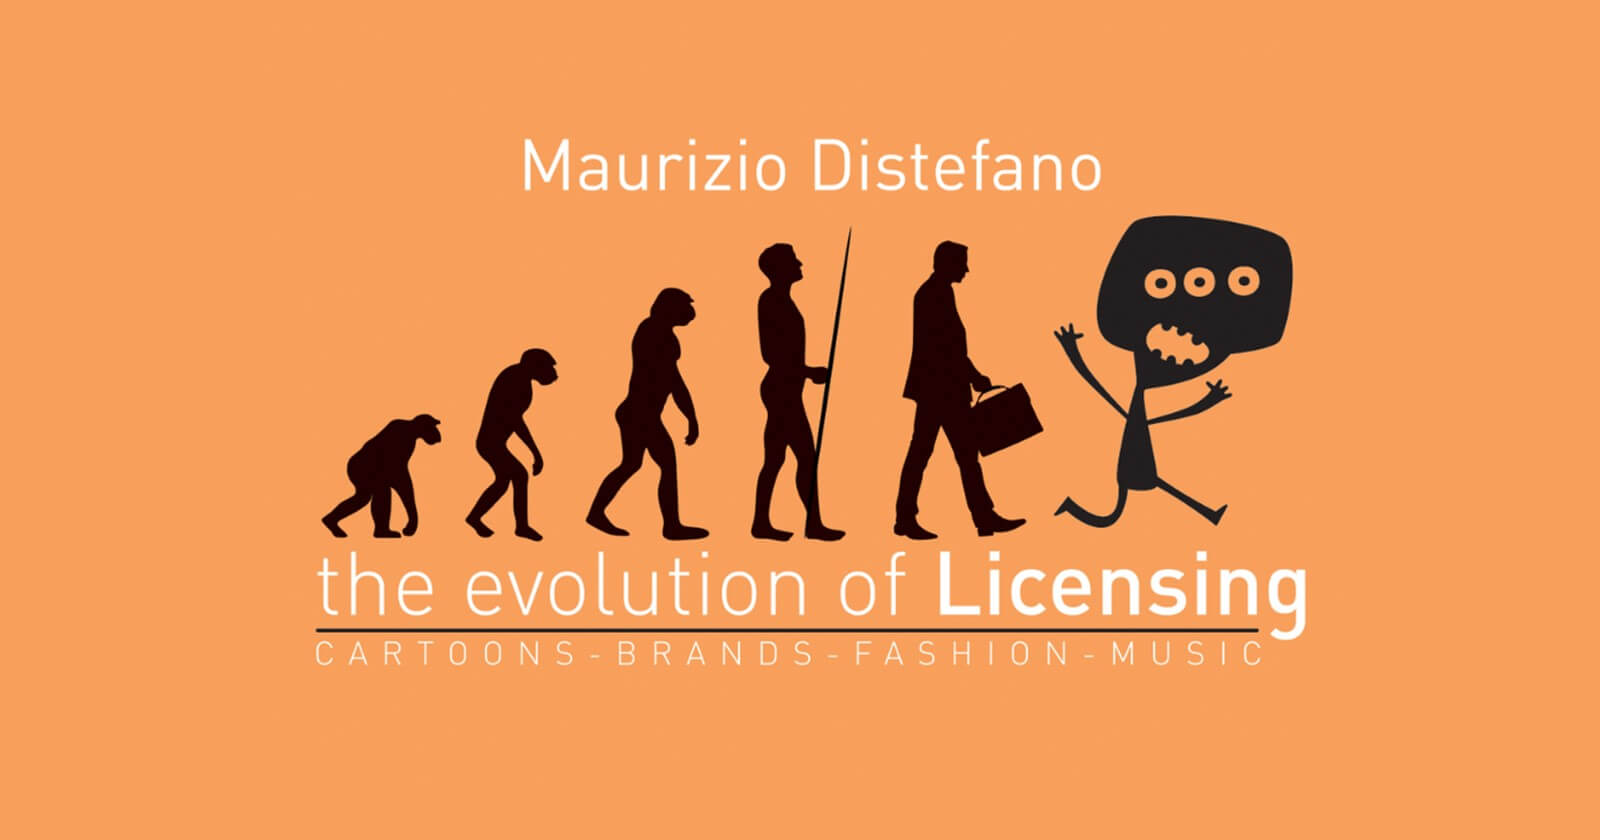 Maurizio Distefano Licensing welcomes new properties in both brand and music categories thanks to the agreement with Global Merchandising Services image